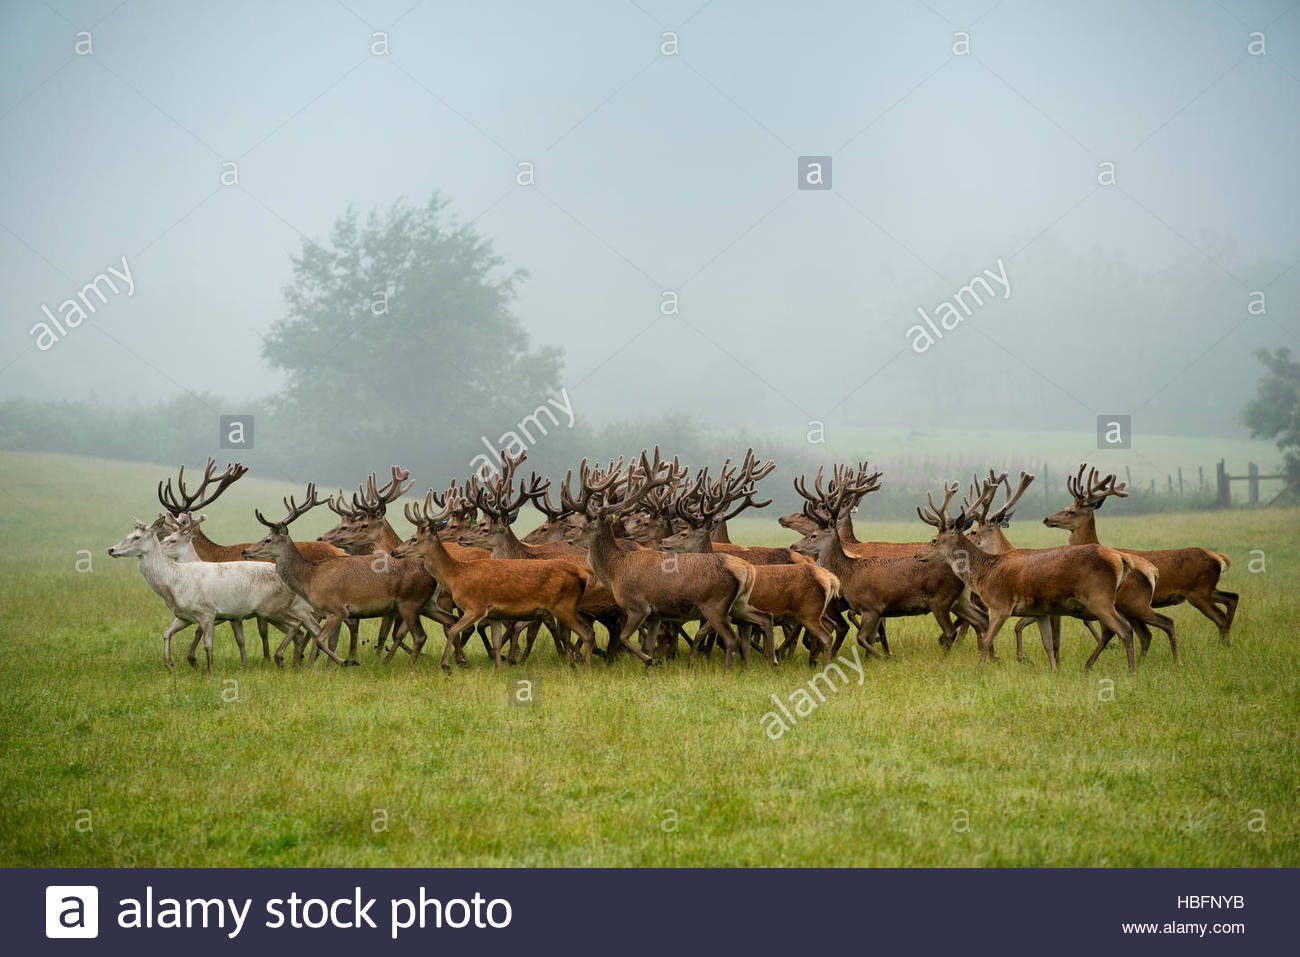 A herd of deer on a farm in Auchtermuchty. - Stock Image